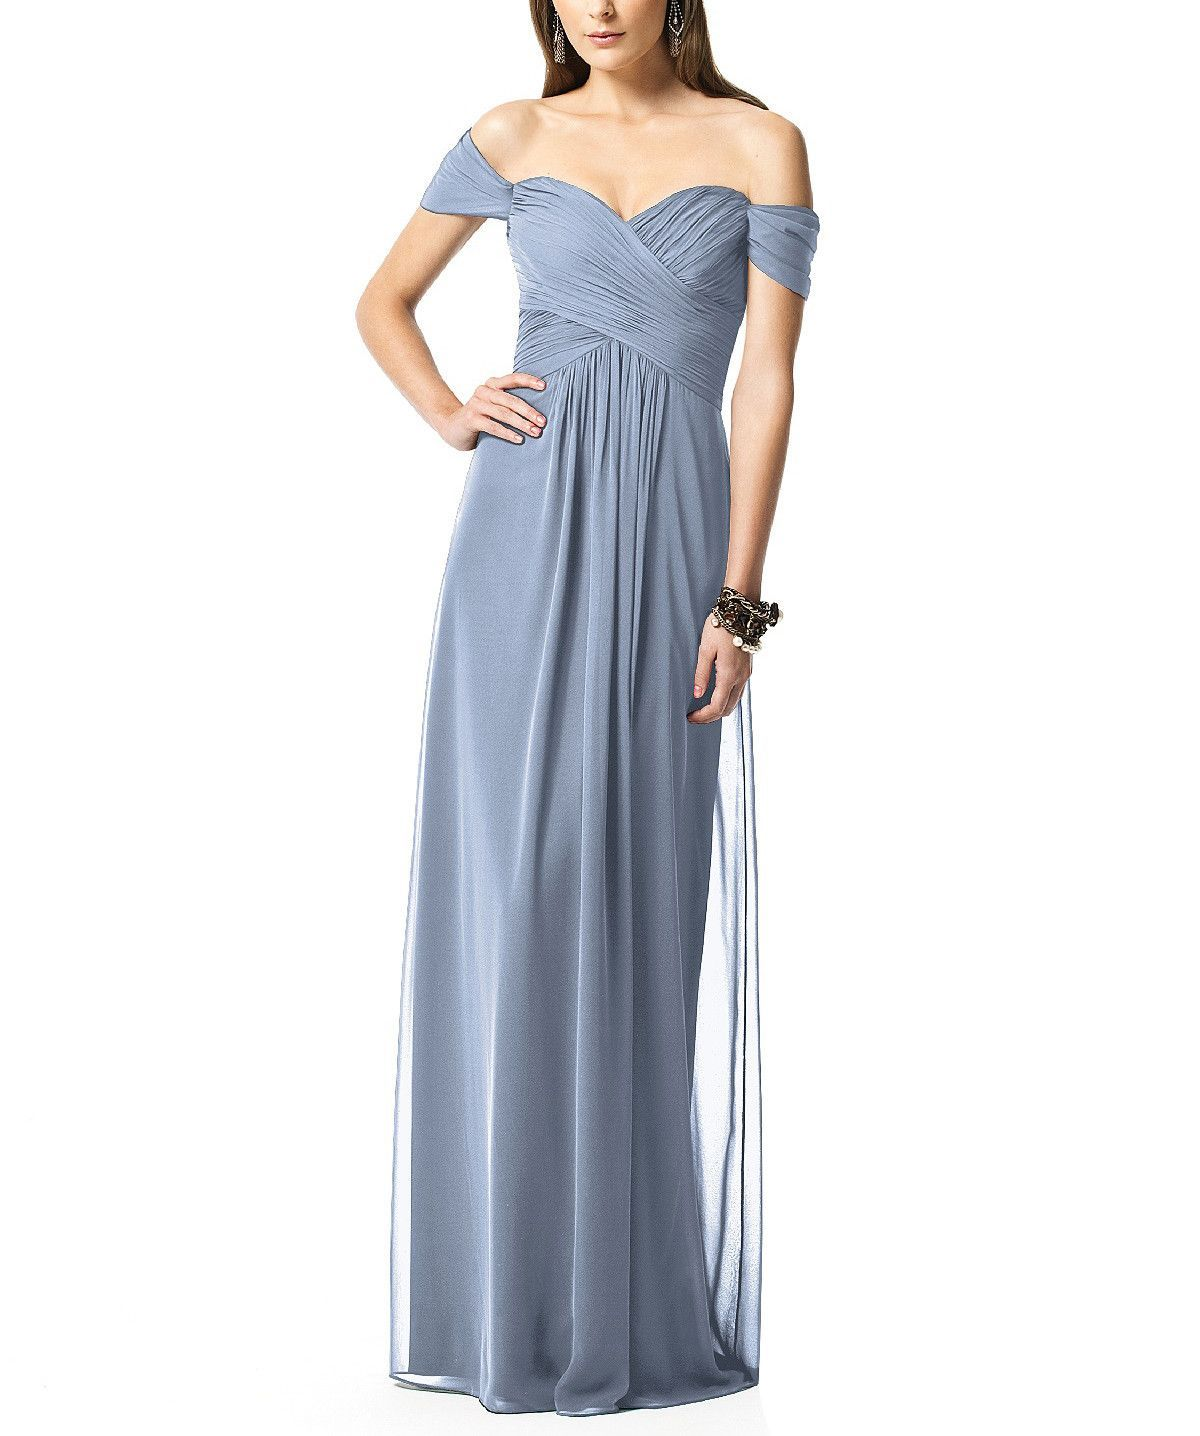 Bellahouston bellabridesmaids cloudy from dessy blues